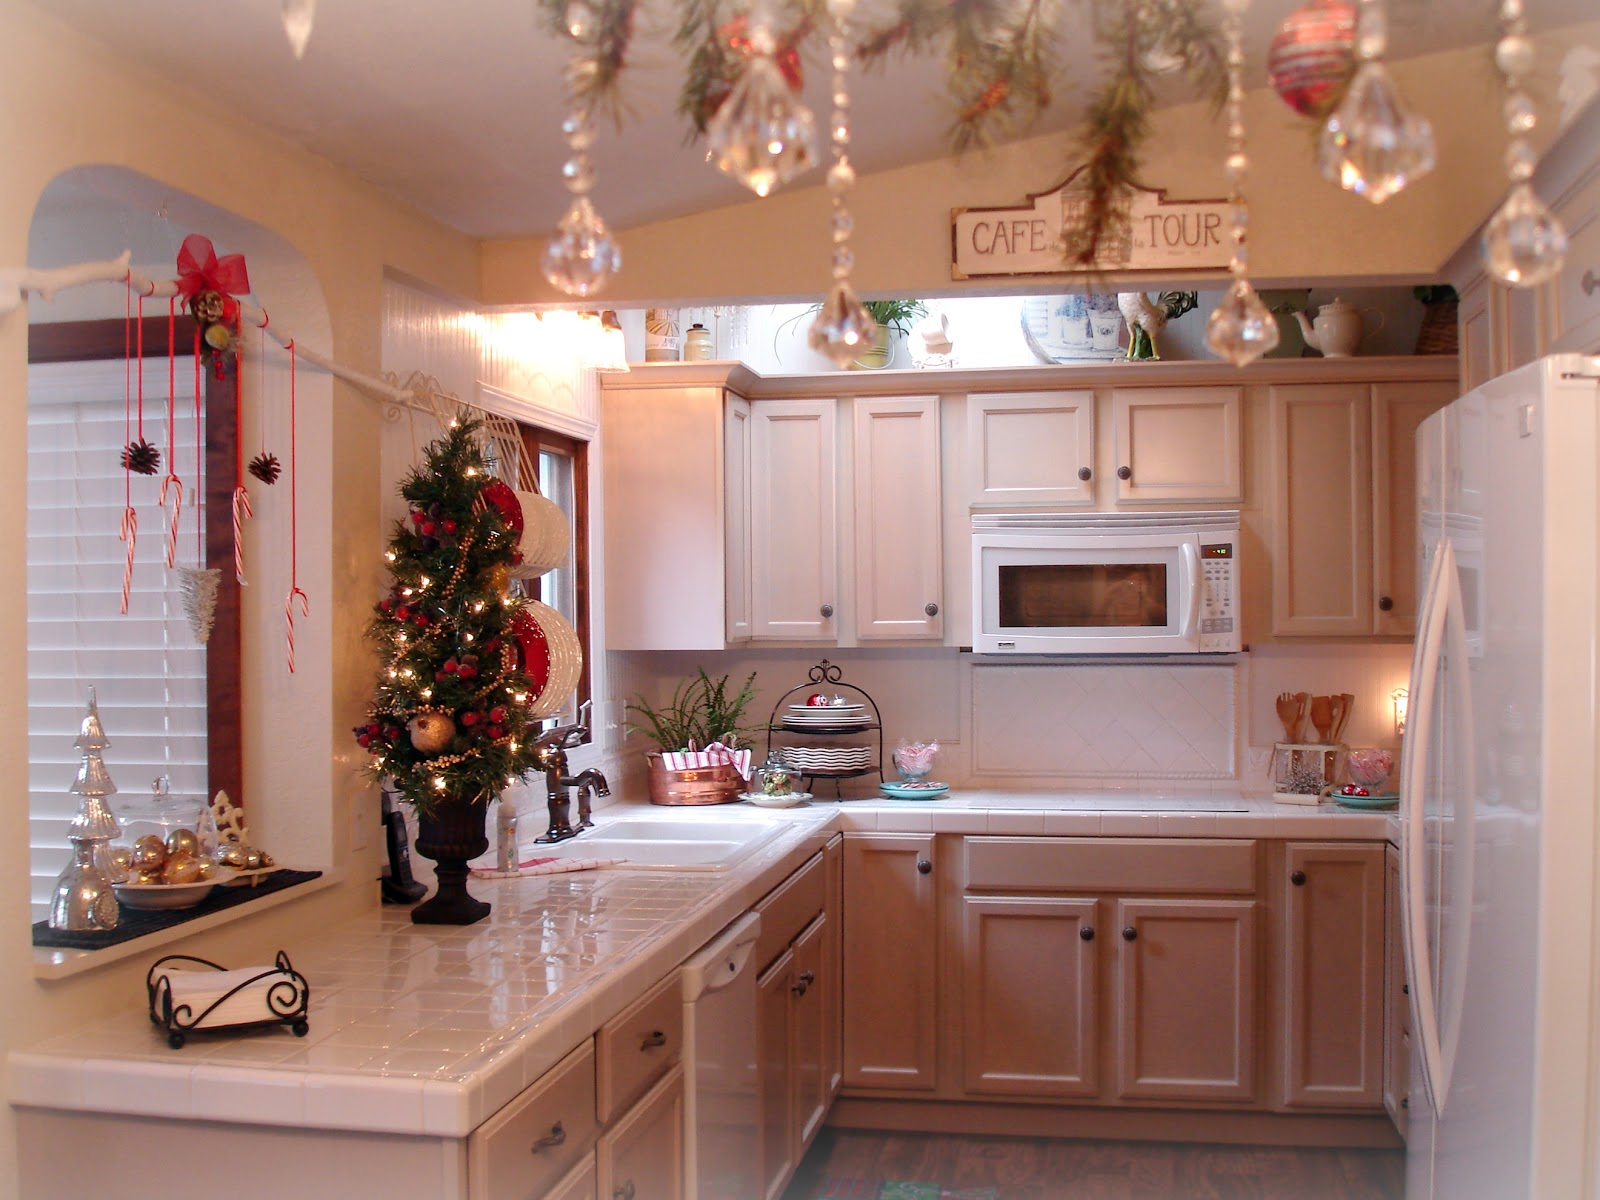 Christmas kitchen decor - Welcome To Our Kitchen